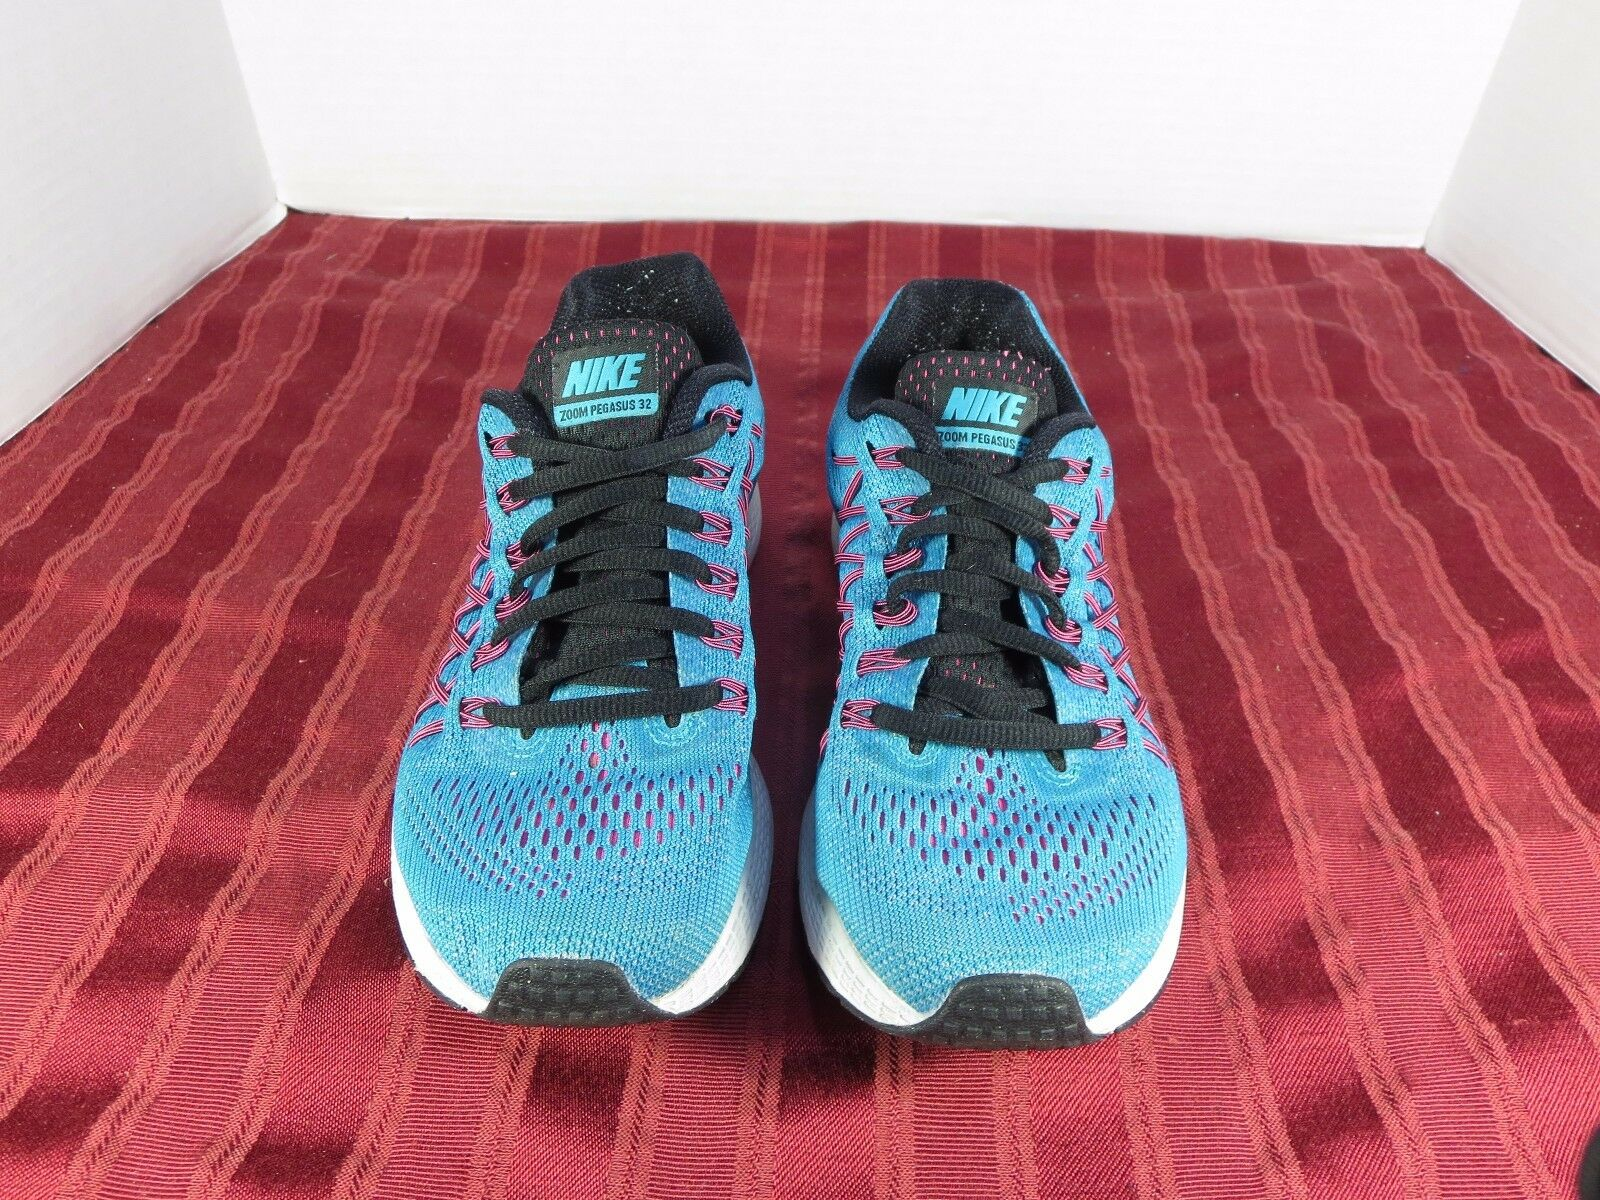 Nike Air Zoom Pegasus 32 Running Fitness CrossFit CrossFit Fitness Jogging Shoes Women Size 6.5 d527f8